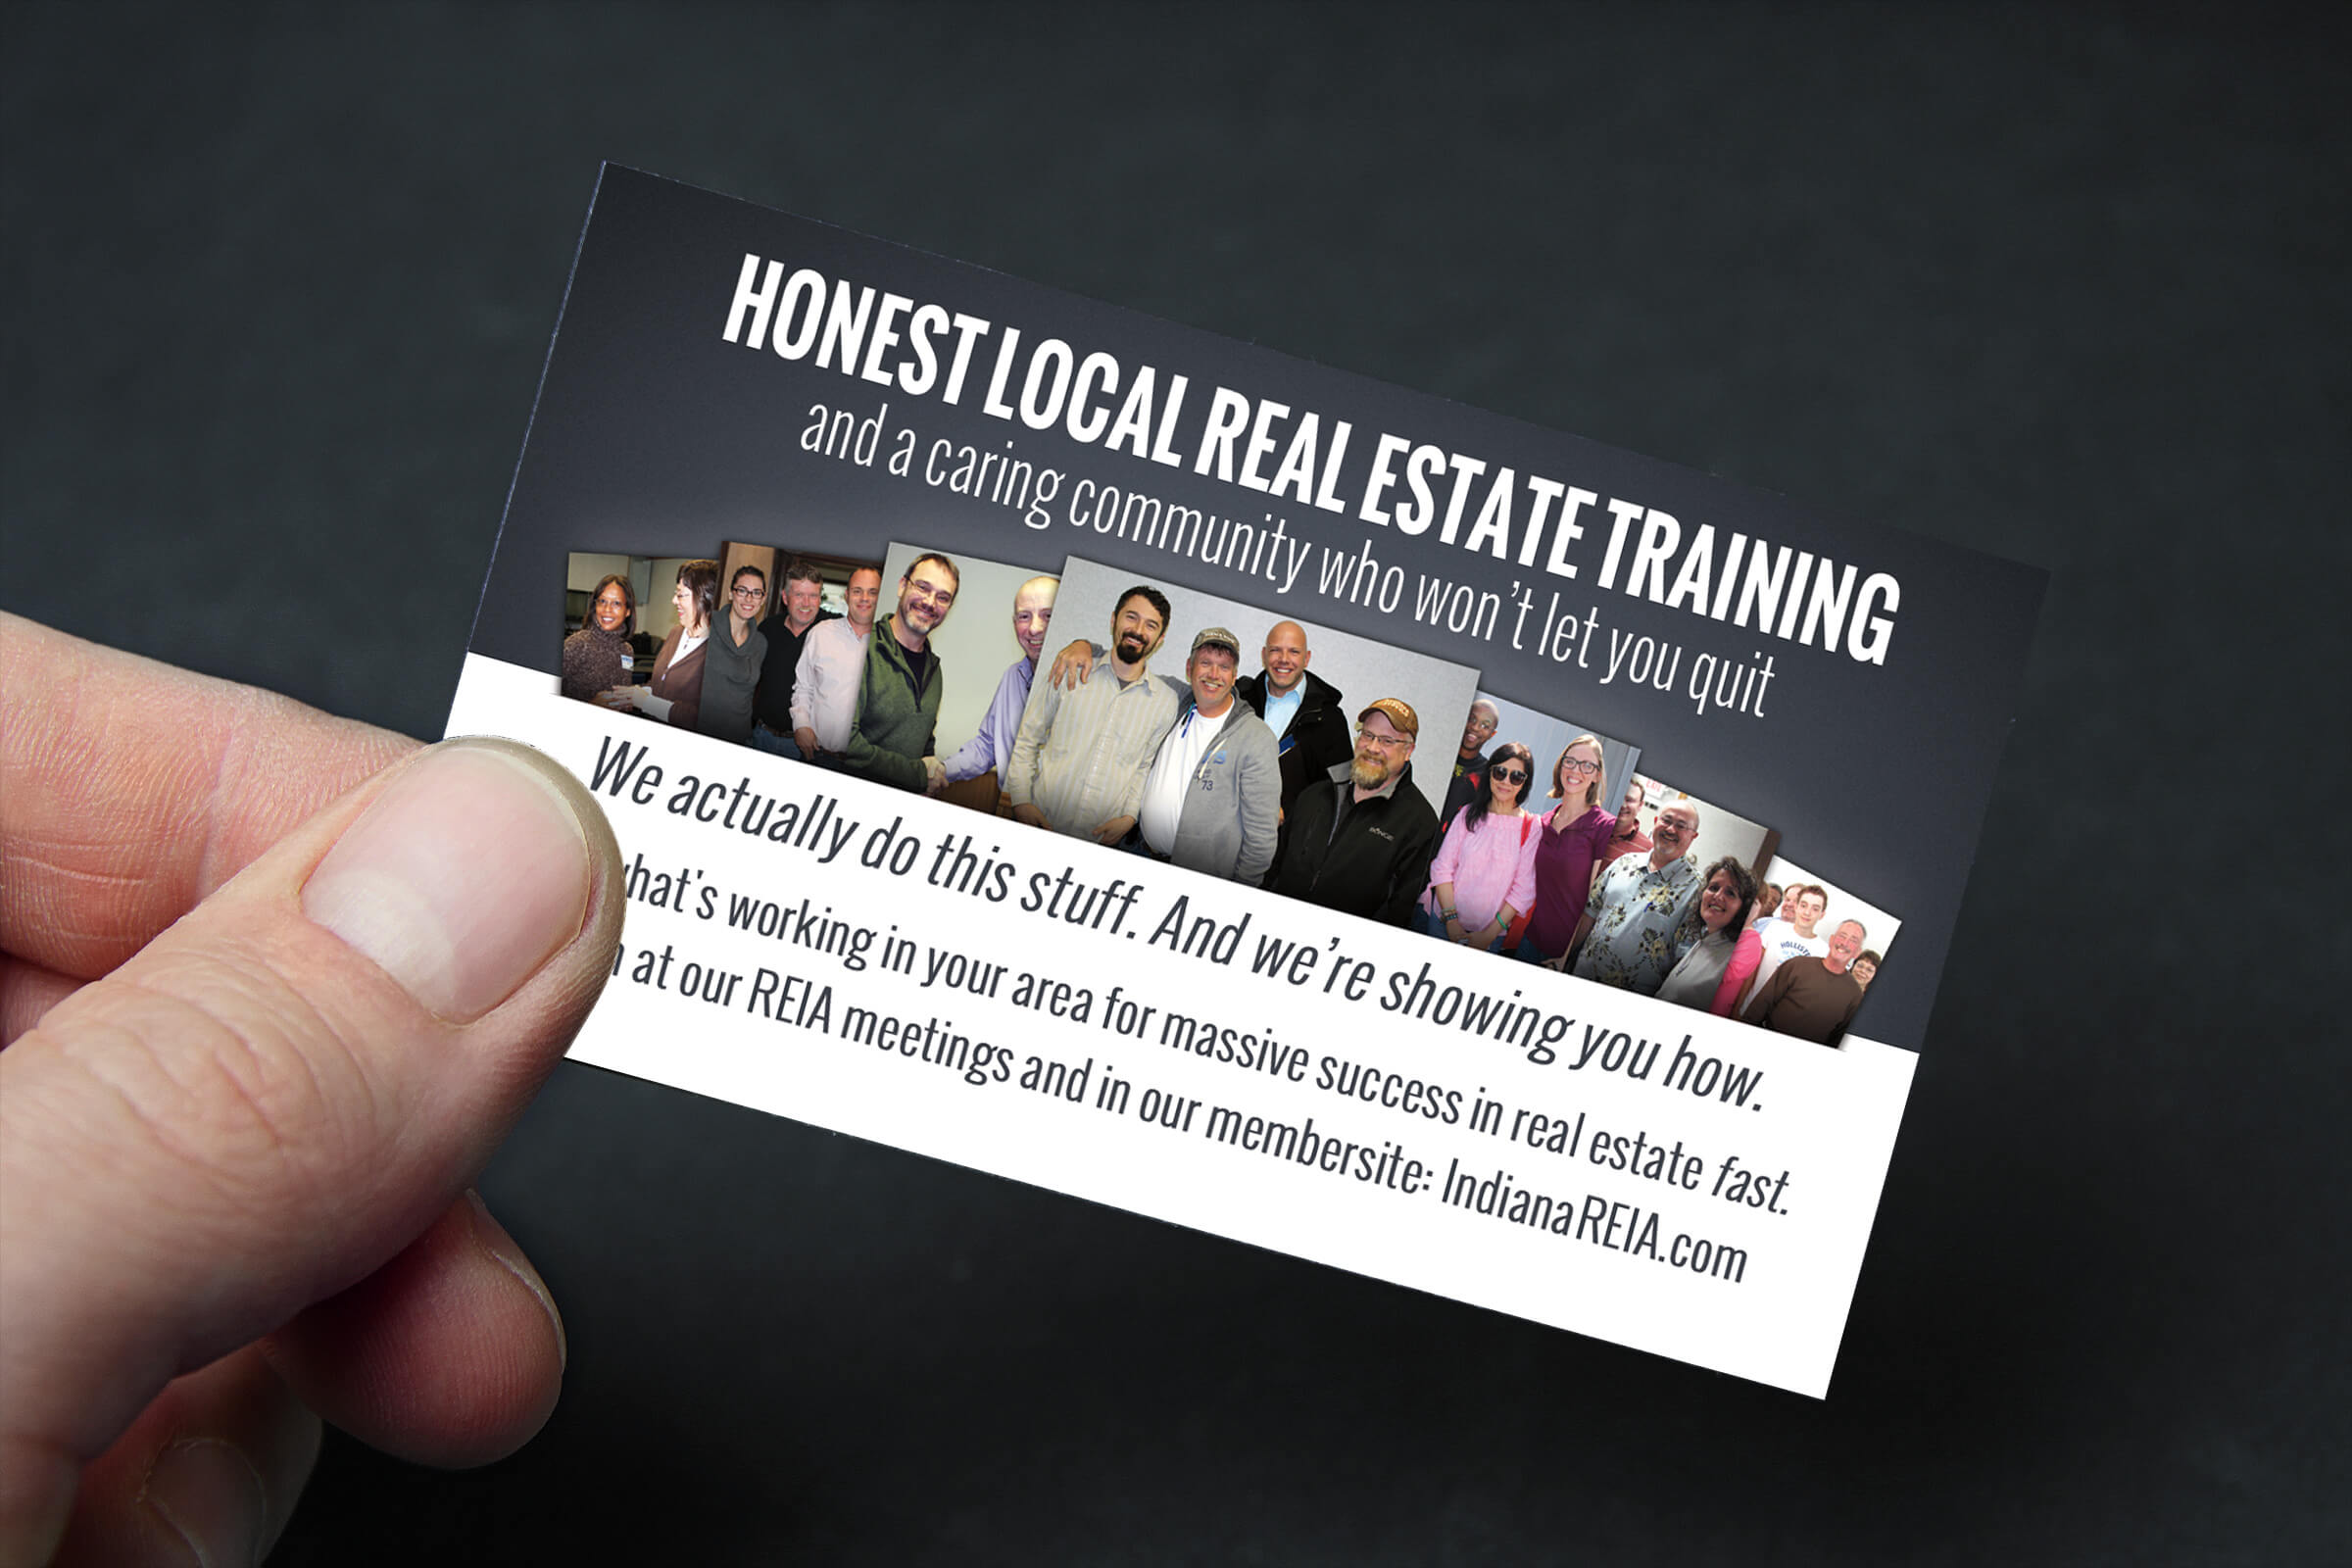 Fort Wayne Indiana's Real Estate Investor Association earns high praise from members press TV